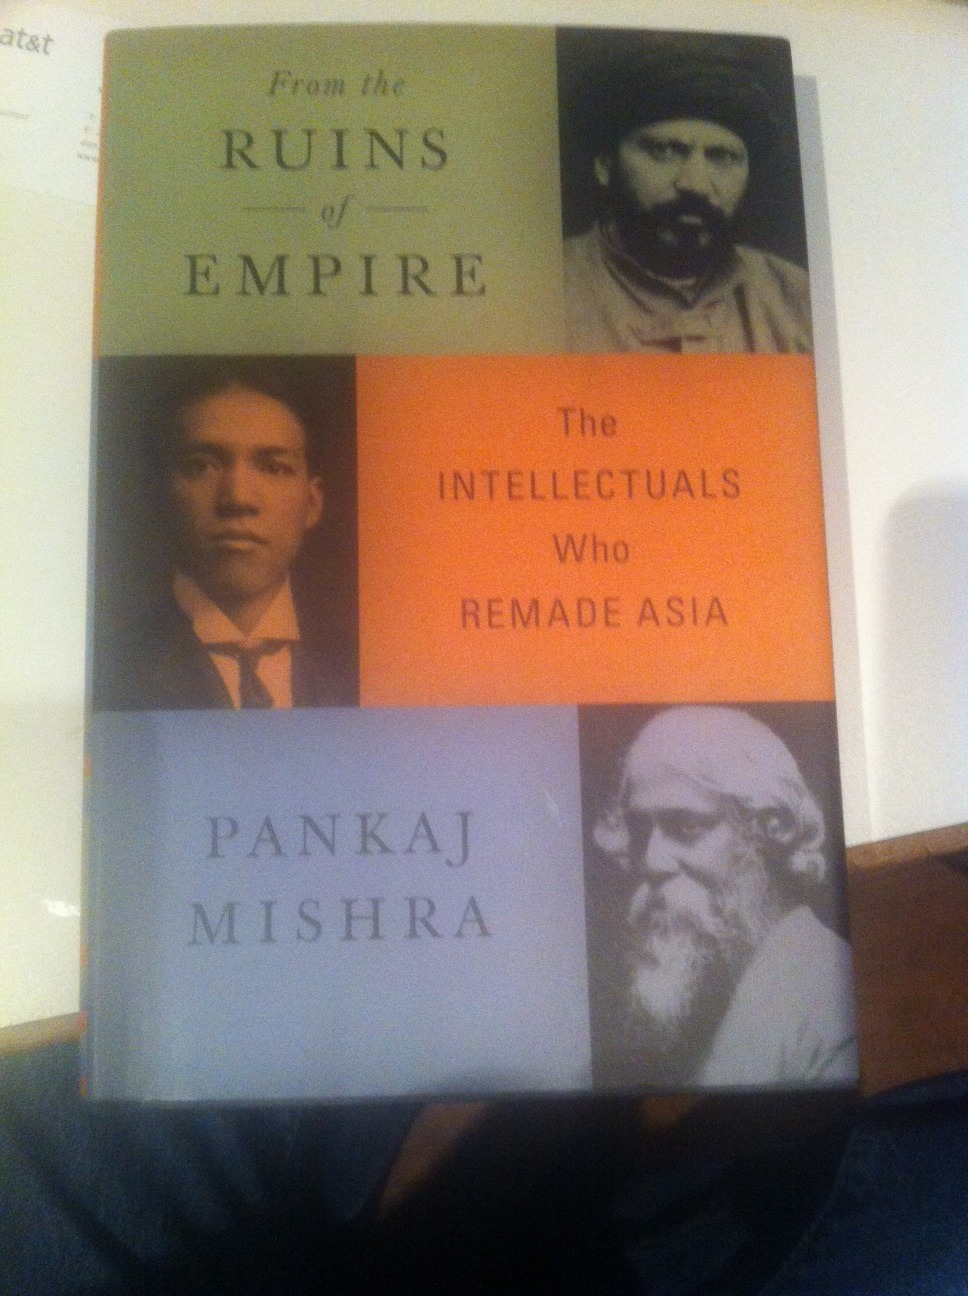 Reading From The Ruins of Empire by Pankaj Mishra, a tonic to counter tonight's Foreign Policy Debate